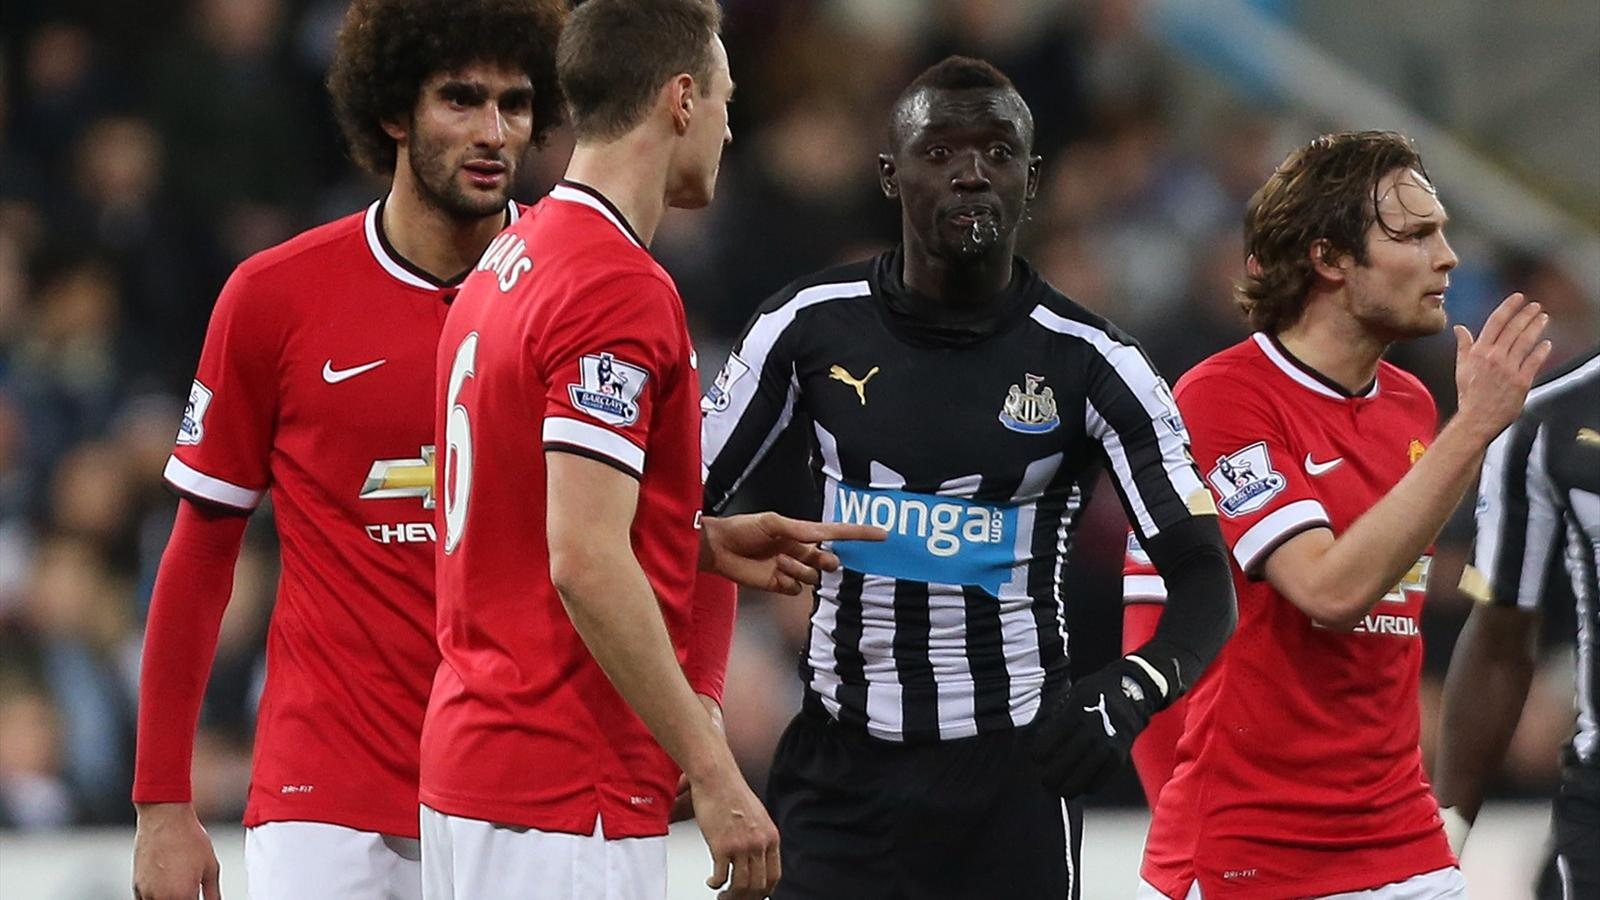 Manchester United's Jonny Evans clashes with Newcastle's Papiss Cisse as Cisse spits (Reuters)